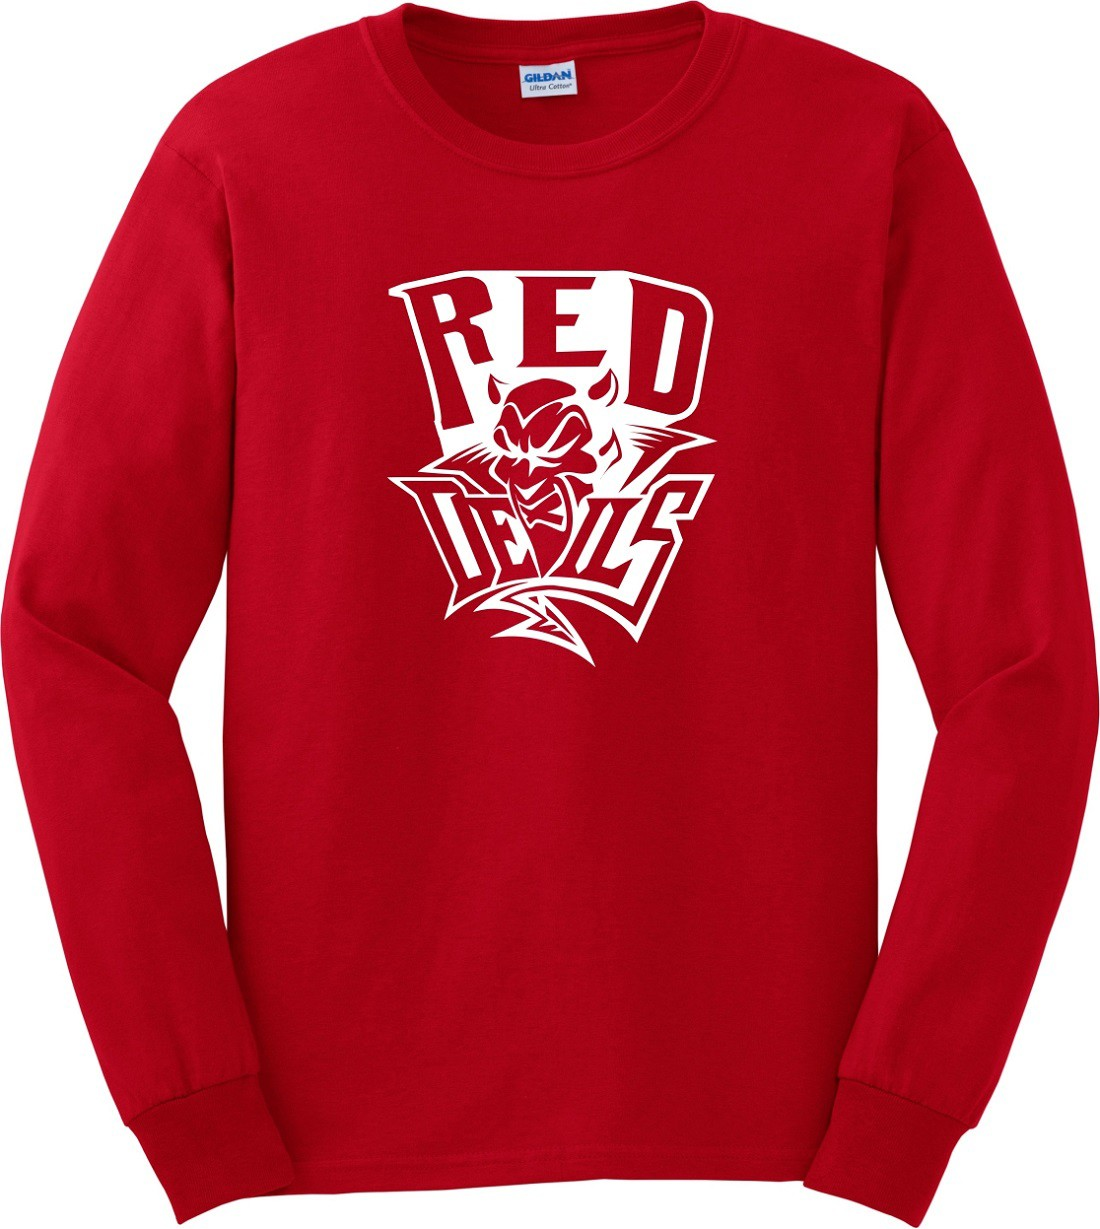 VVS Red Devils Long Sleeve Tee